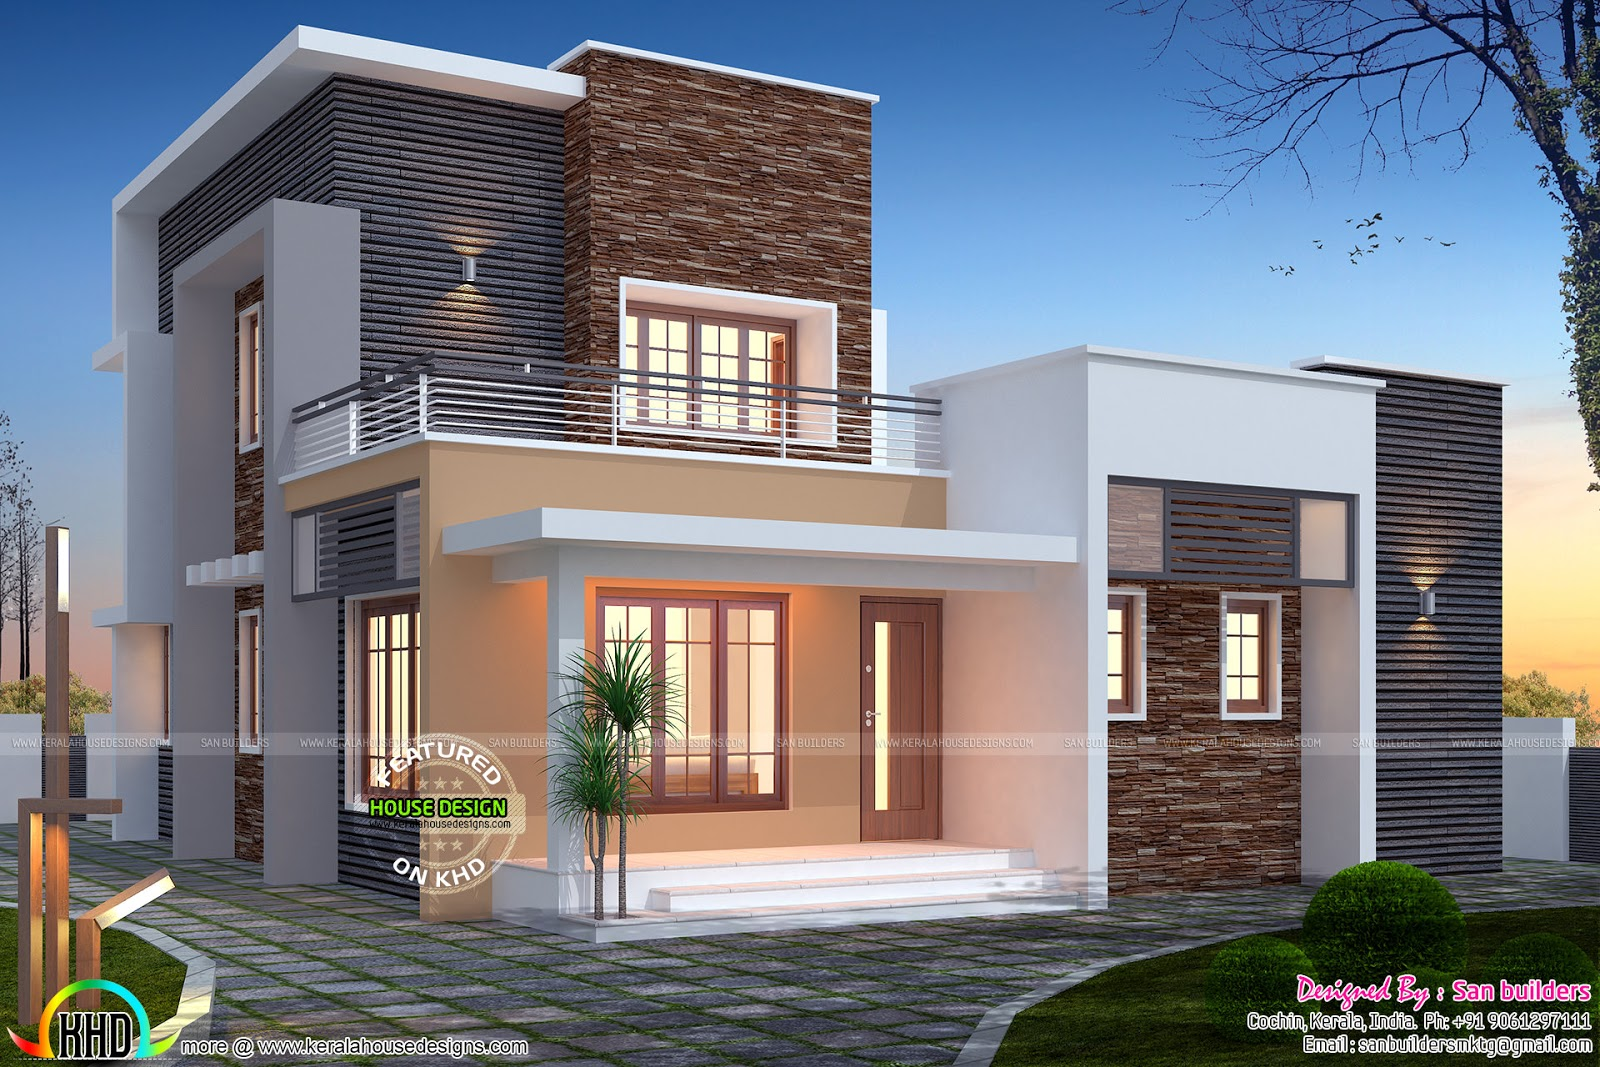 3 Bedroom Flat Roof 1516 Sq Ft Home Home Design Decor